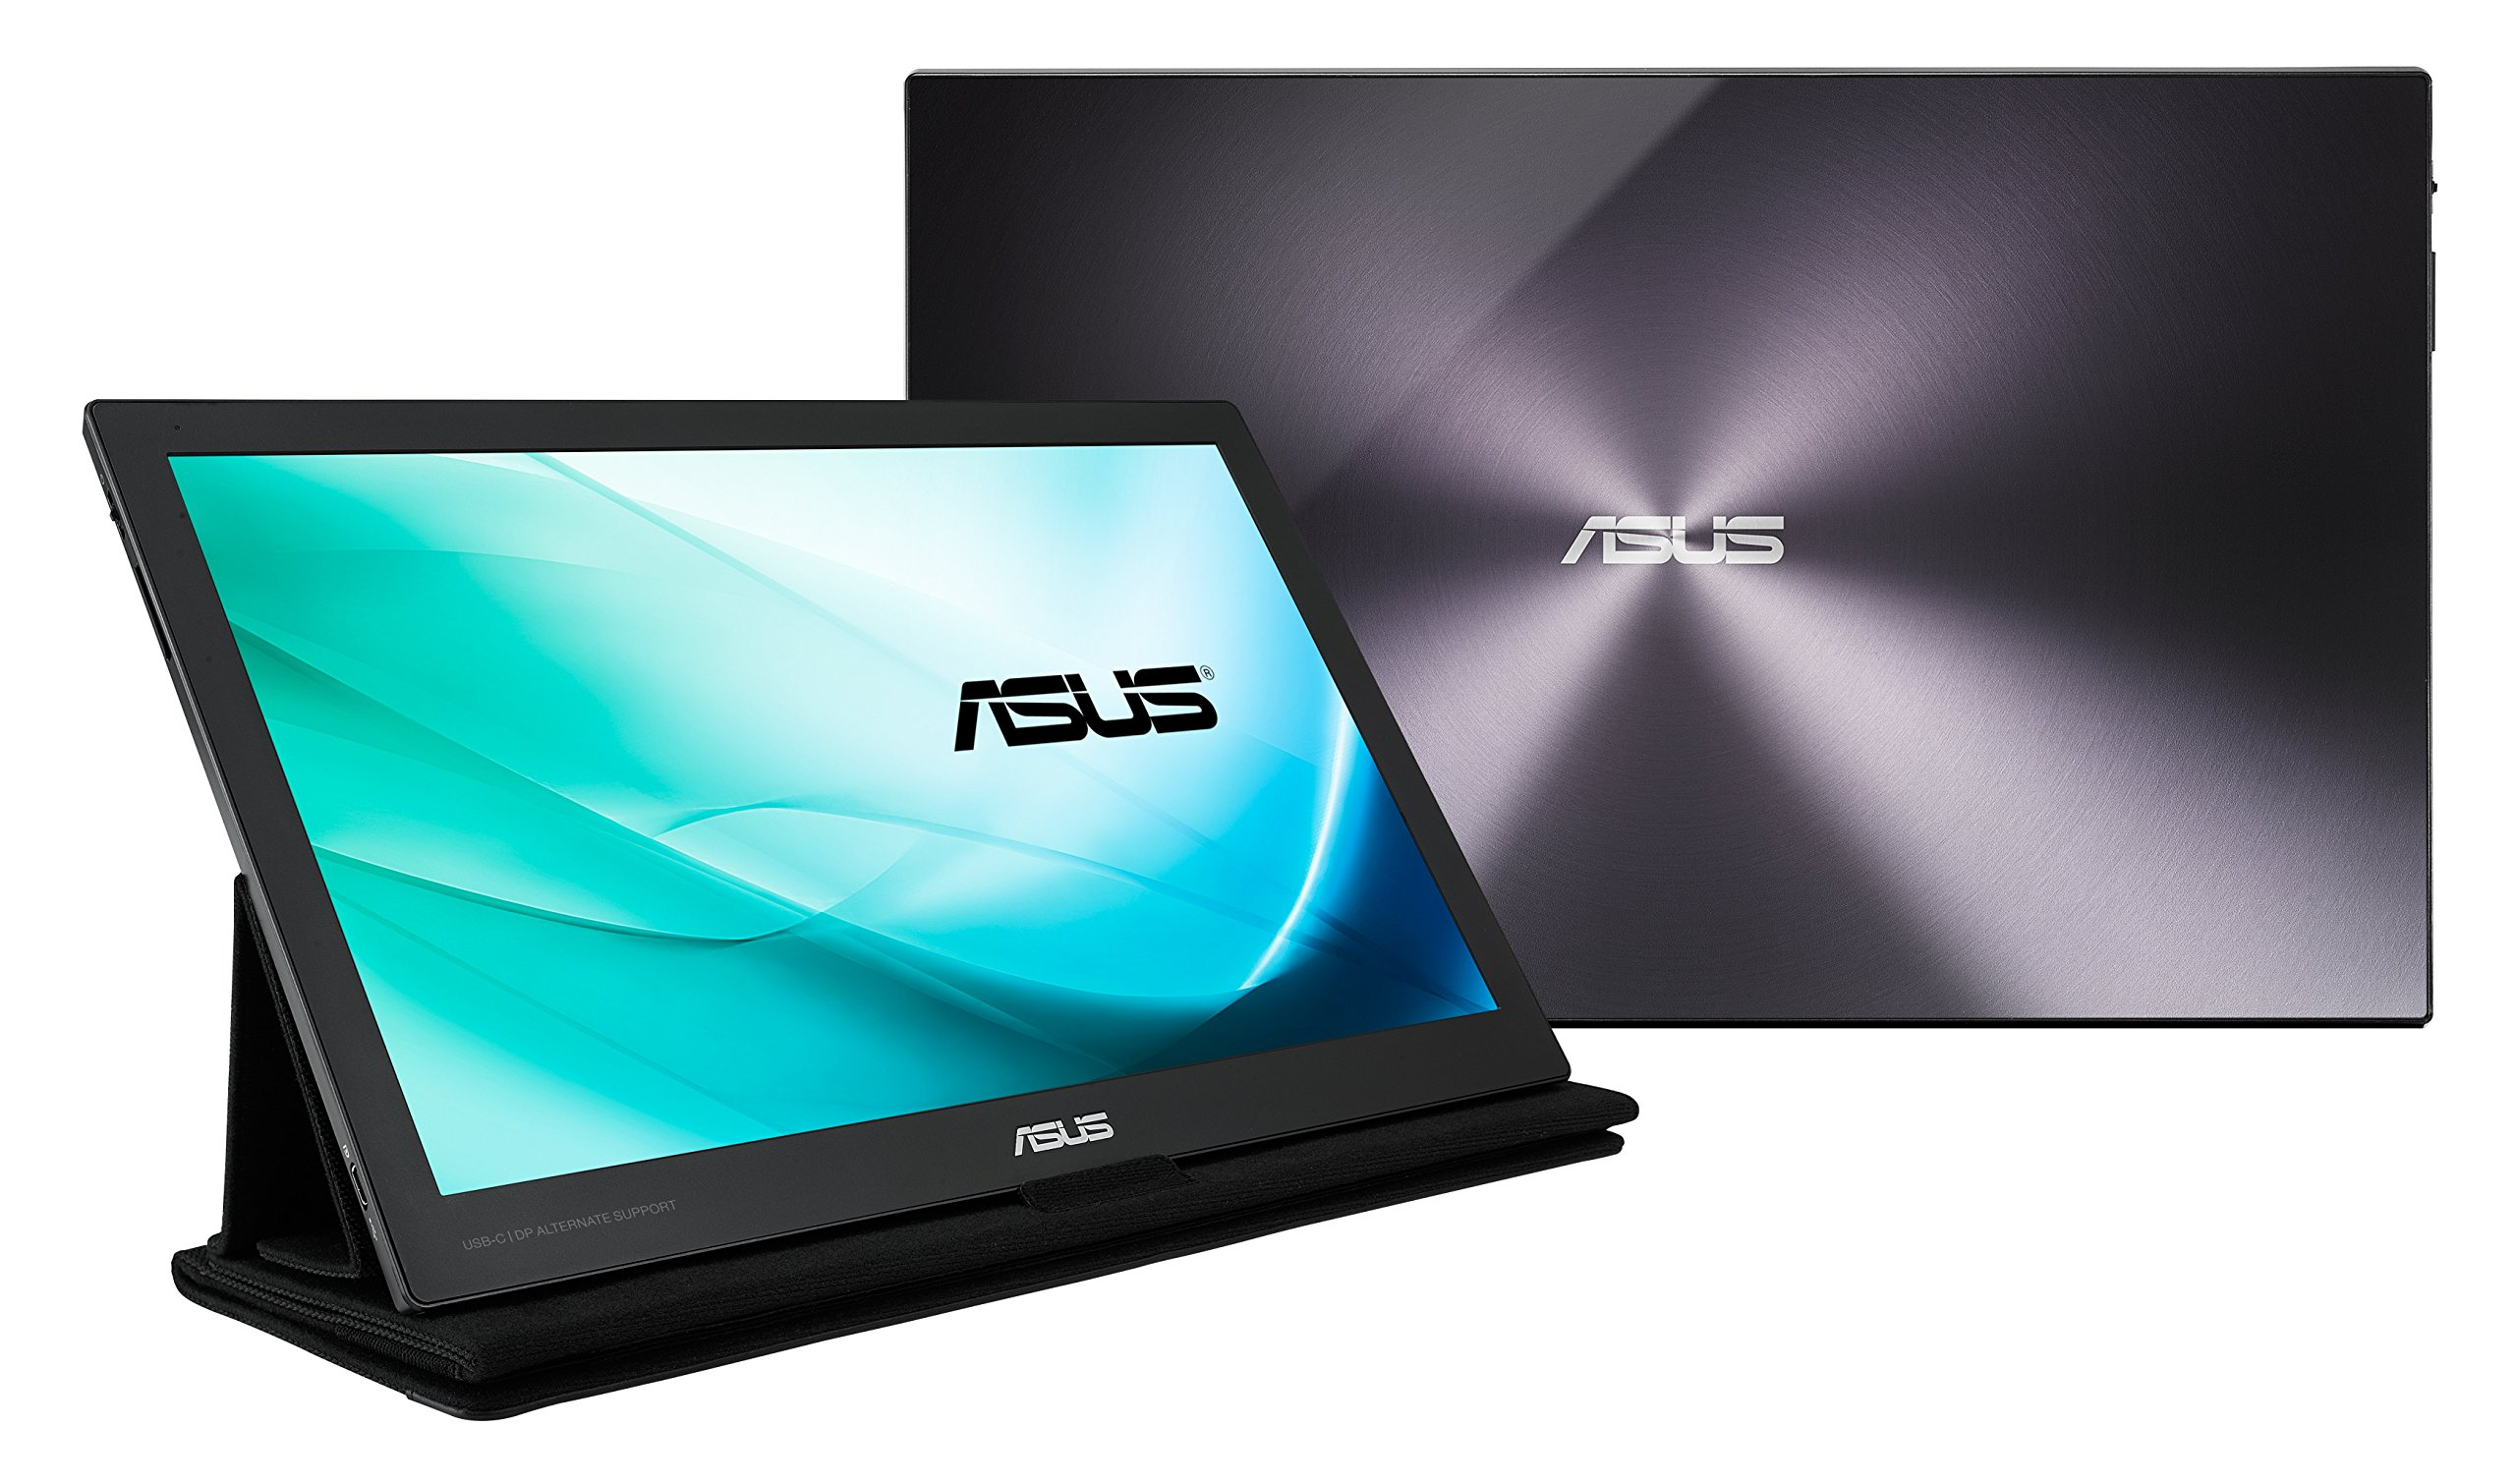 ASUS MB169C+ 15.6'' Full HD 1920x1080 IPS USB Type-C Powered Eye Care Portable Monitor